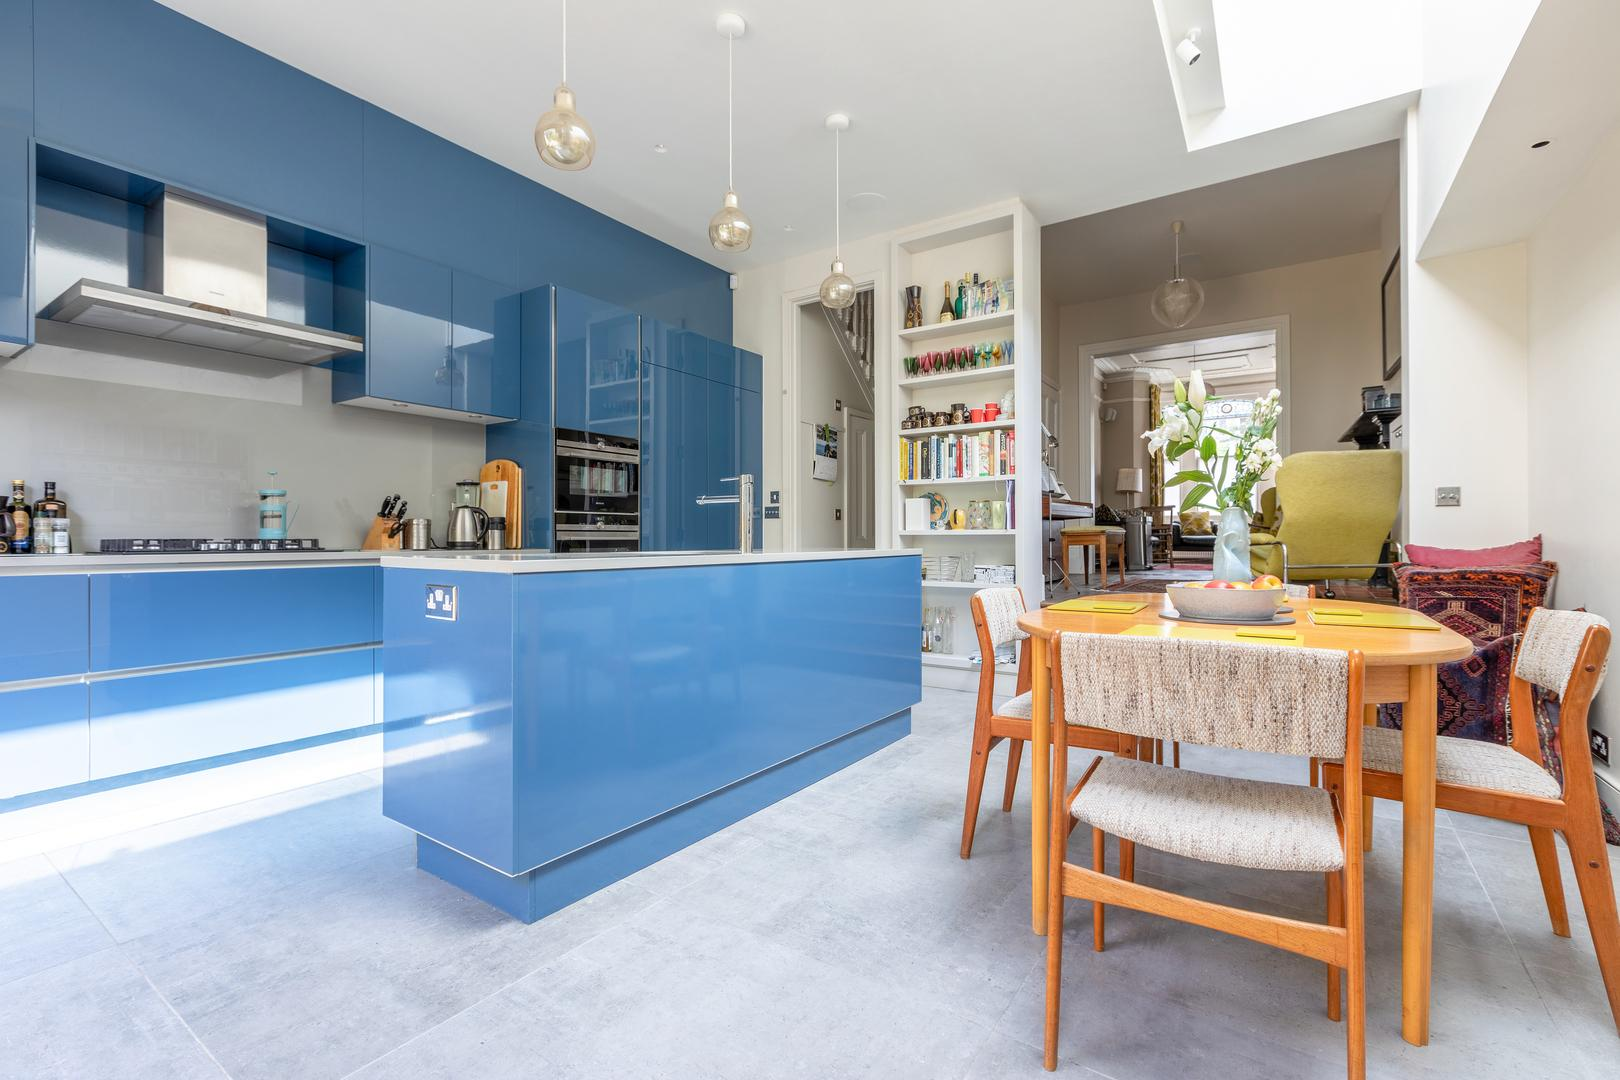 Property Image 1 - Spacious Arty Stoke Newington Home with Chic Interior